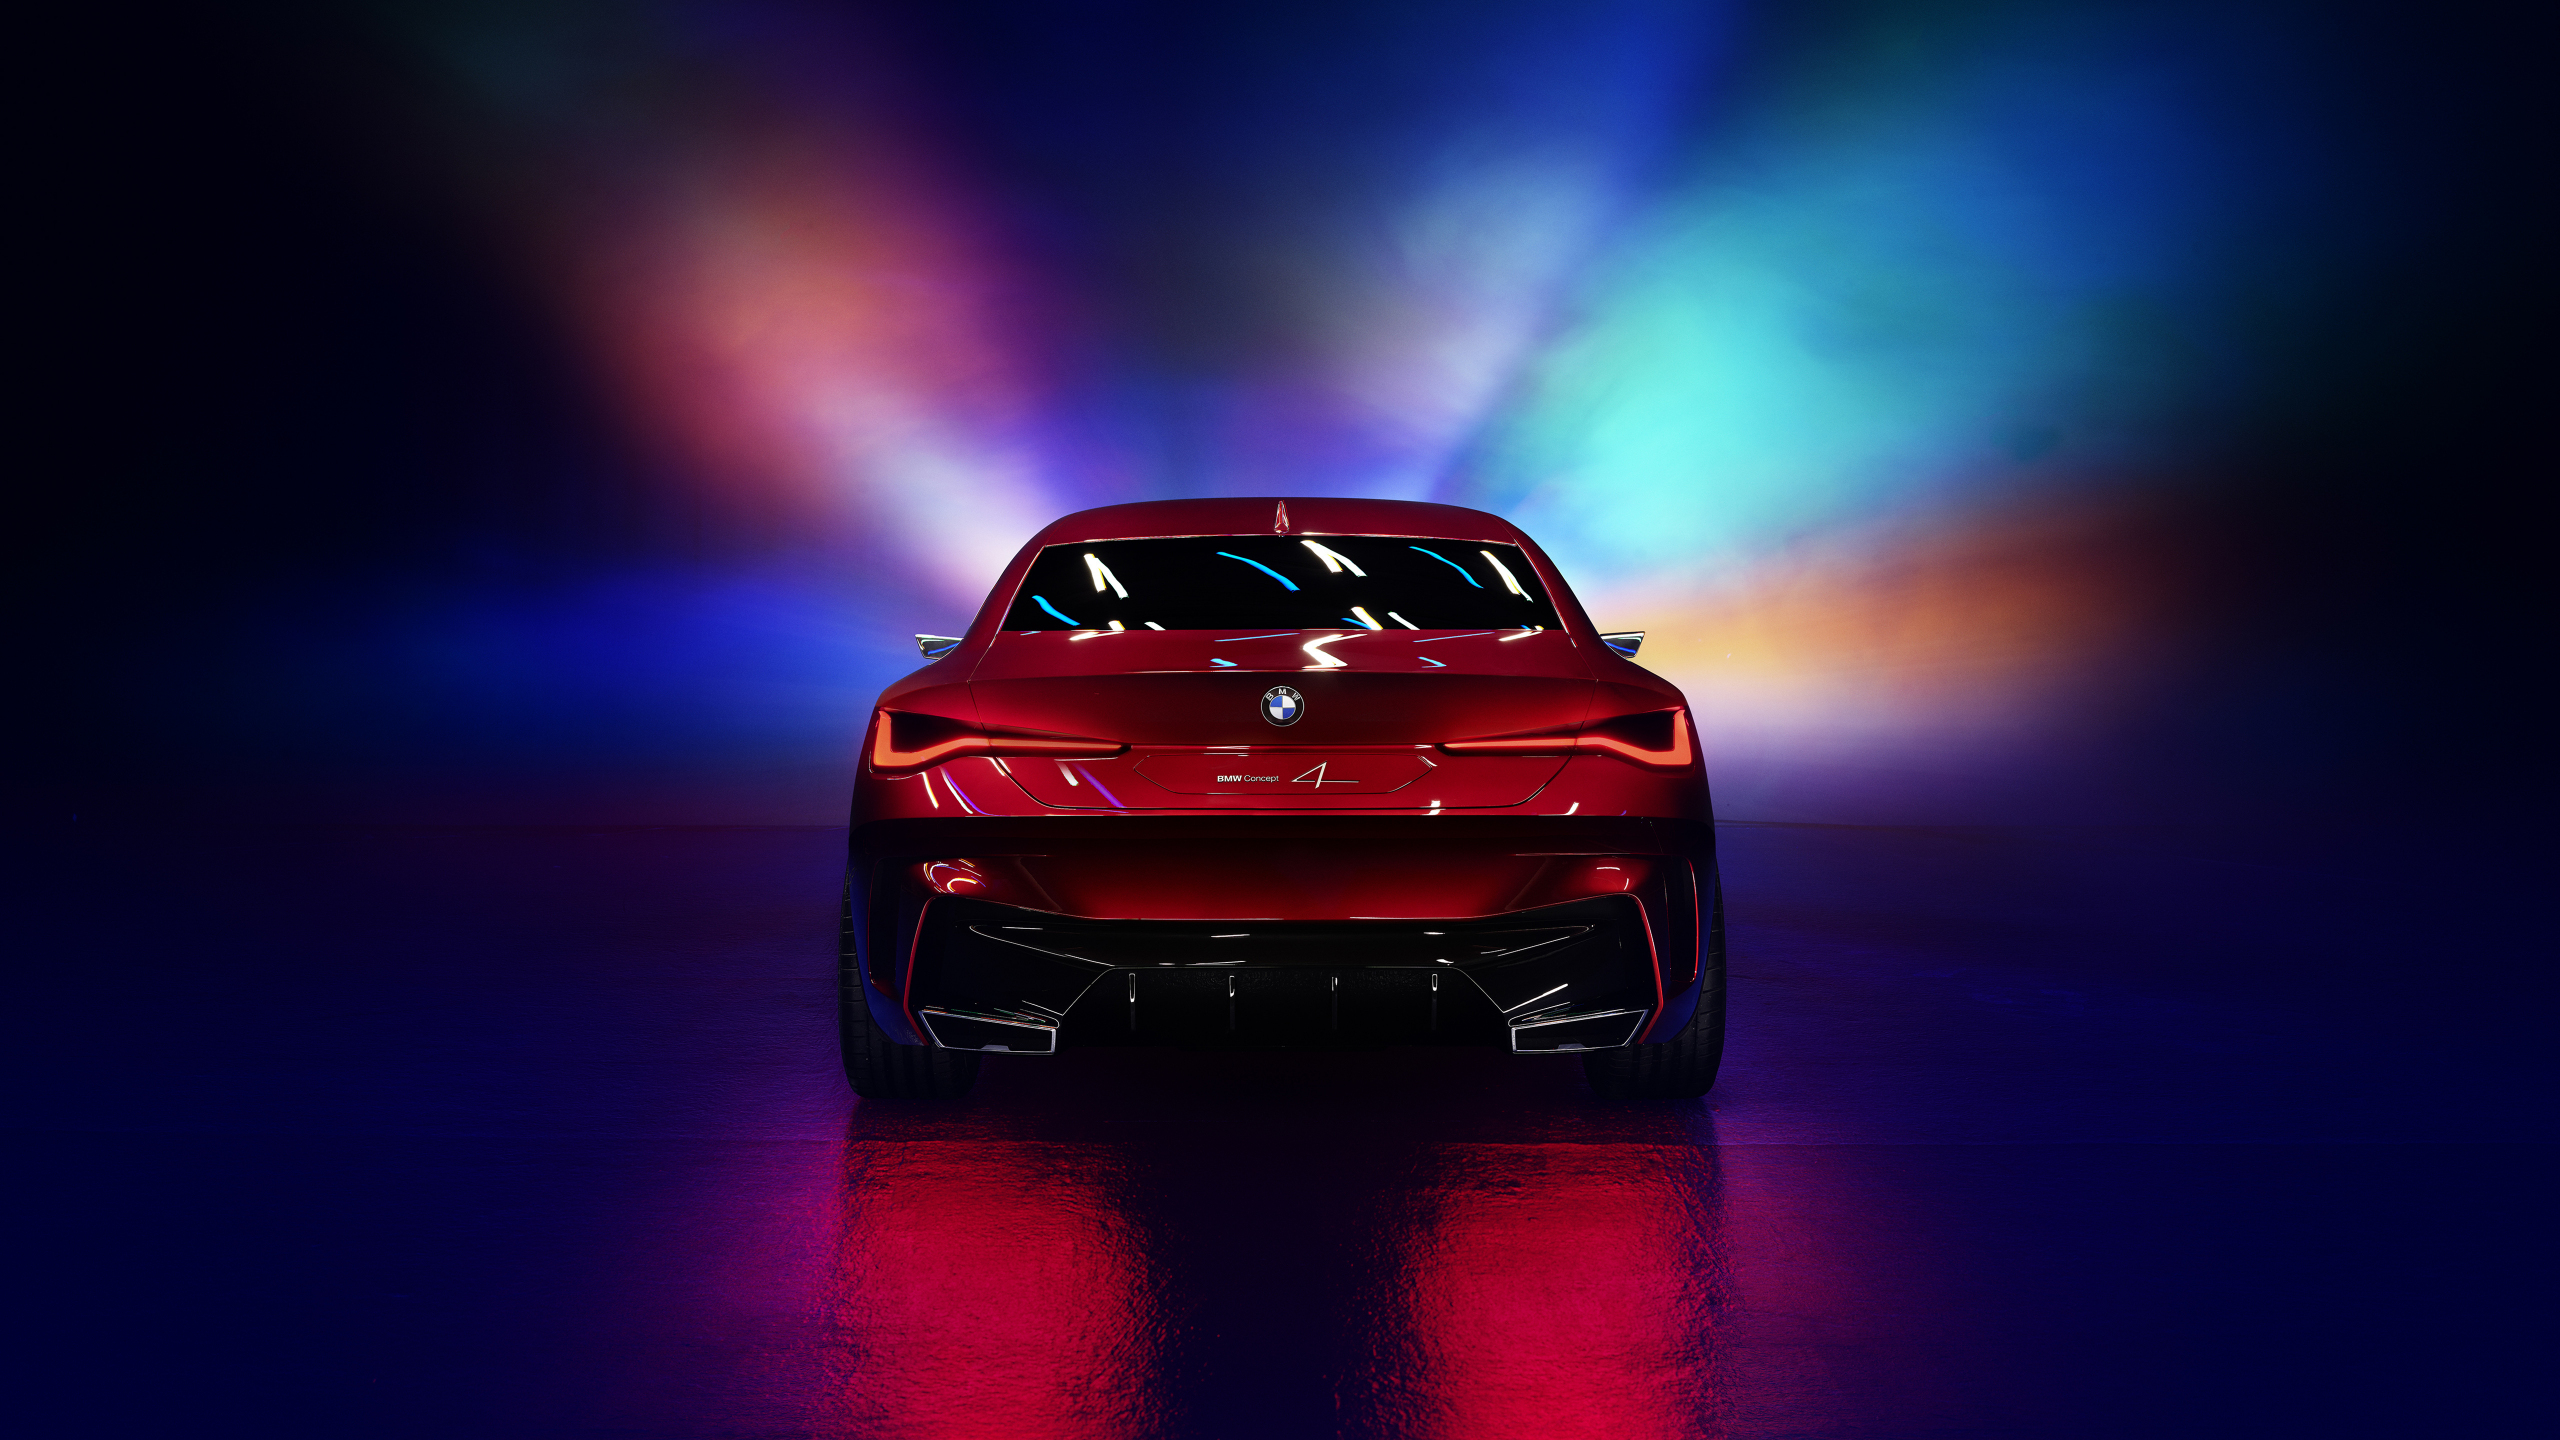 Download 2560x1440 Wallpaper Bmw Concept 4 Car Rear View Dual Wide Widescreen 16 9 Widescreen 2560x1440 Hd Image Background 22746